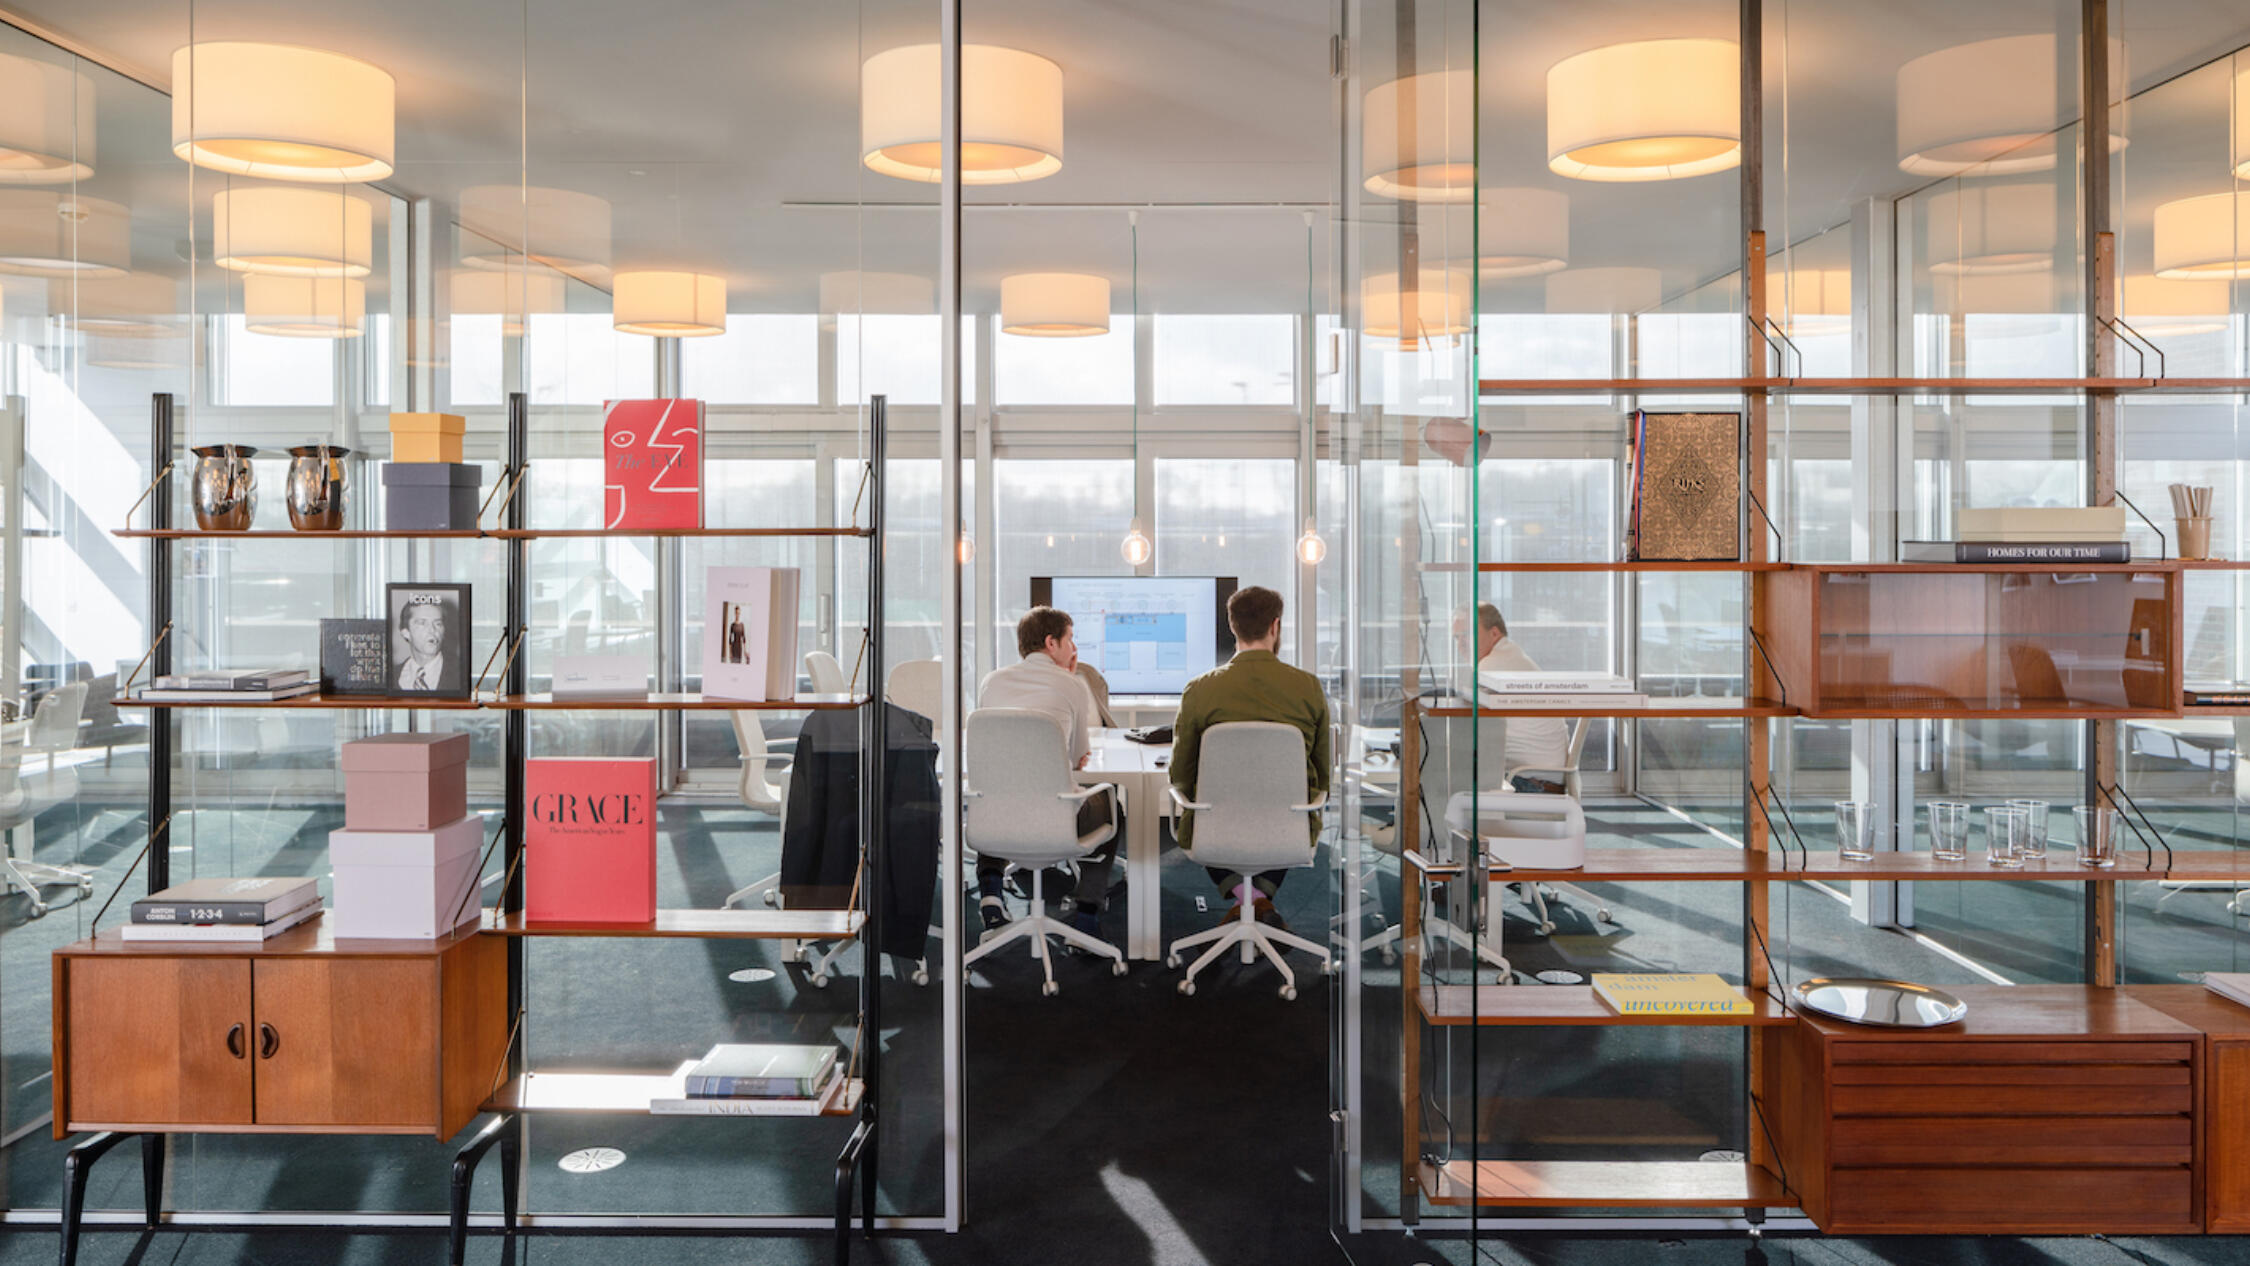 A Factorij interior office space with people working at desks framed by open bookcases